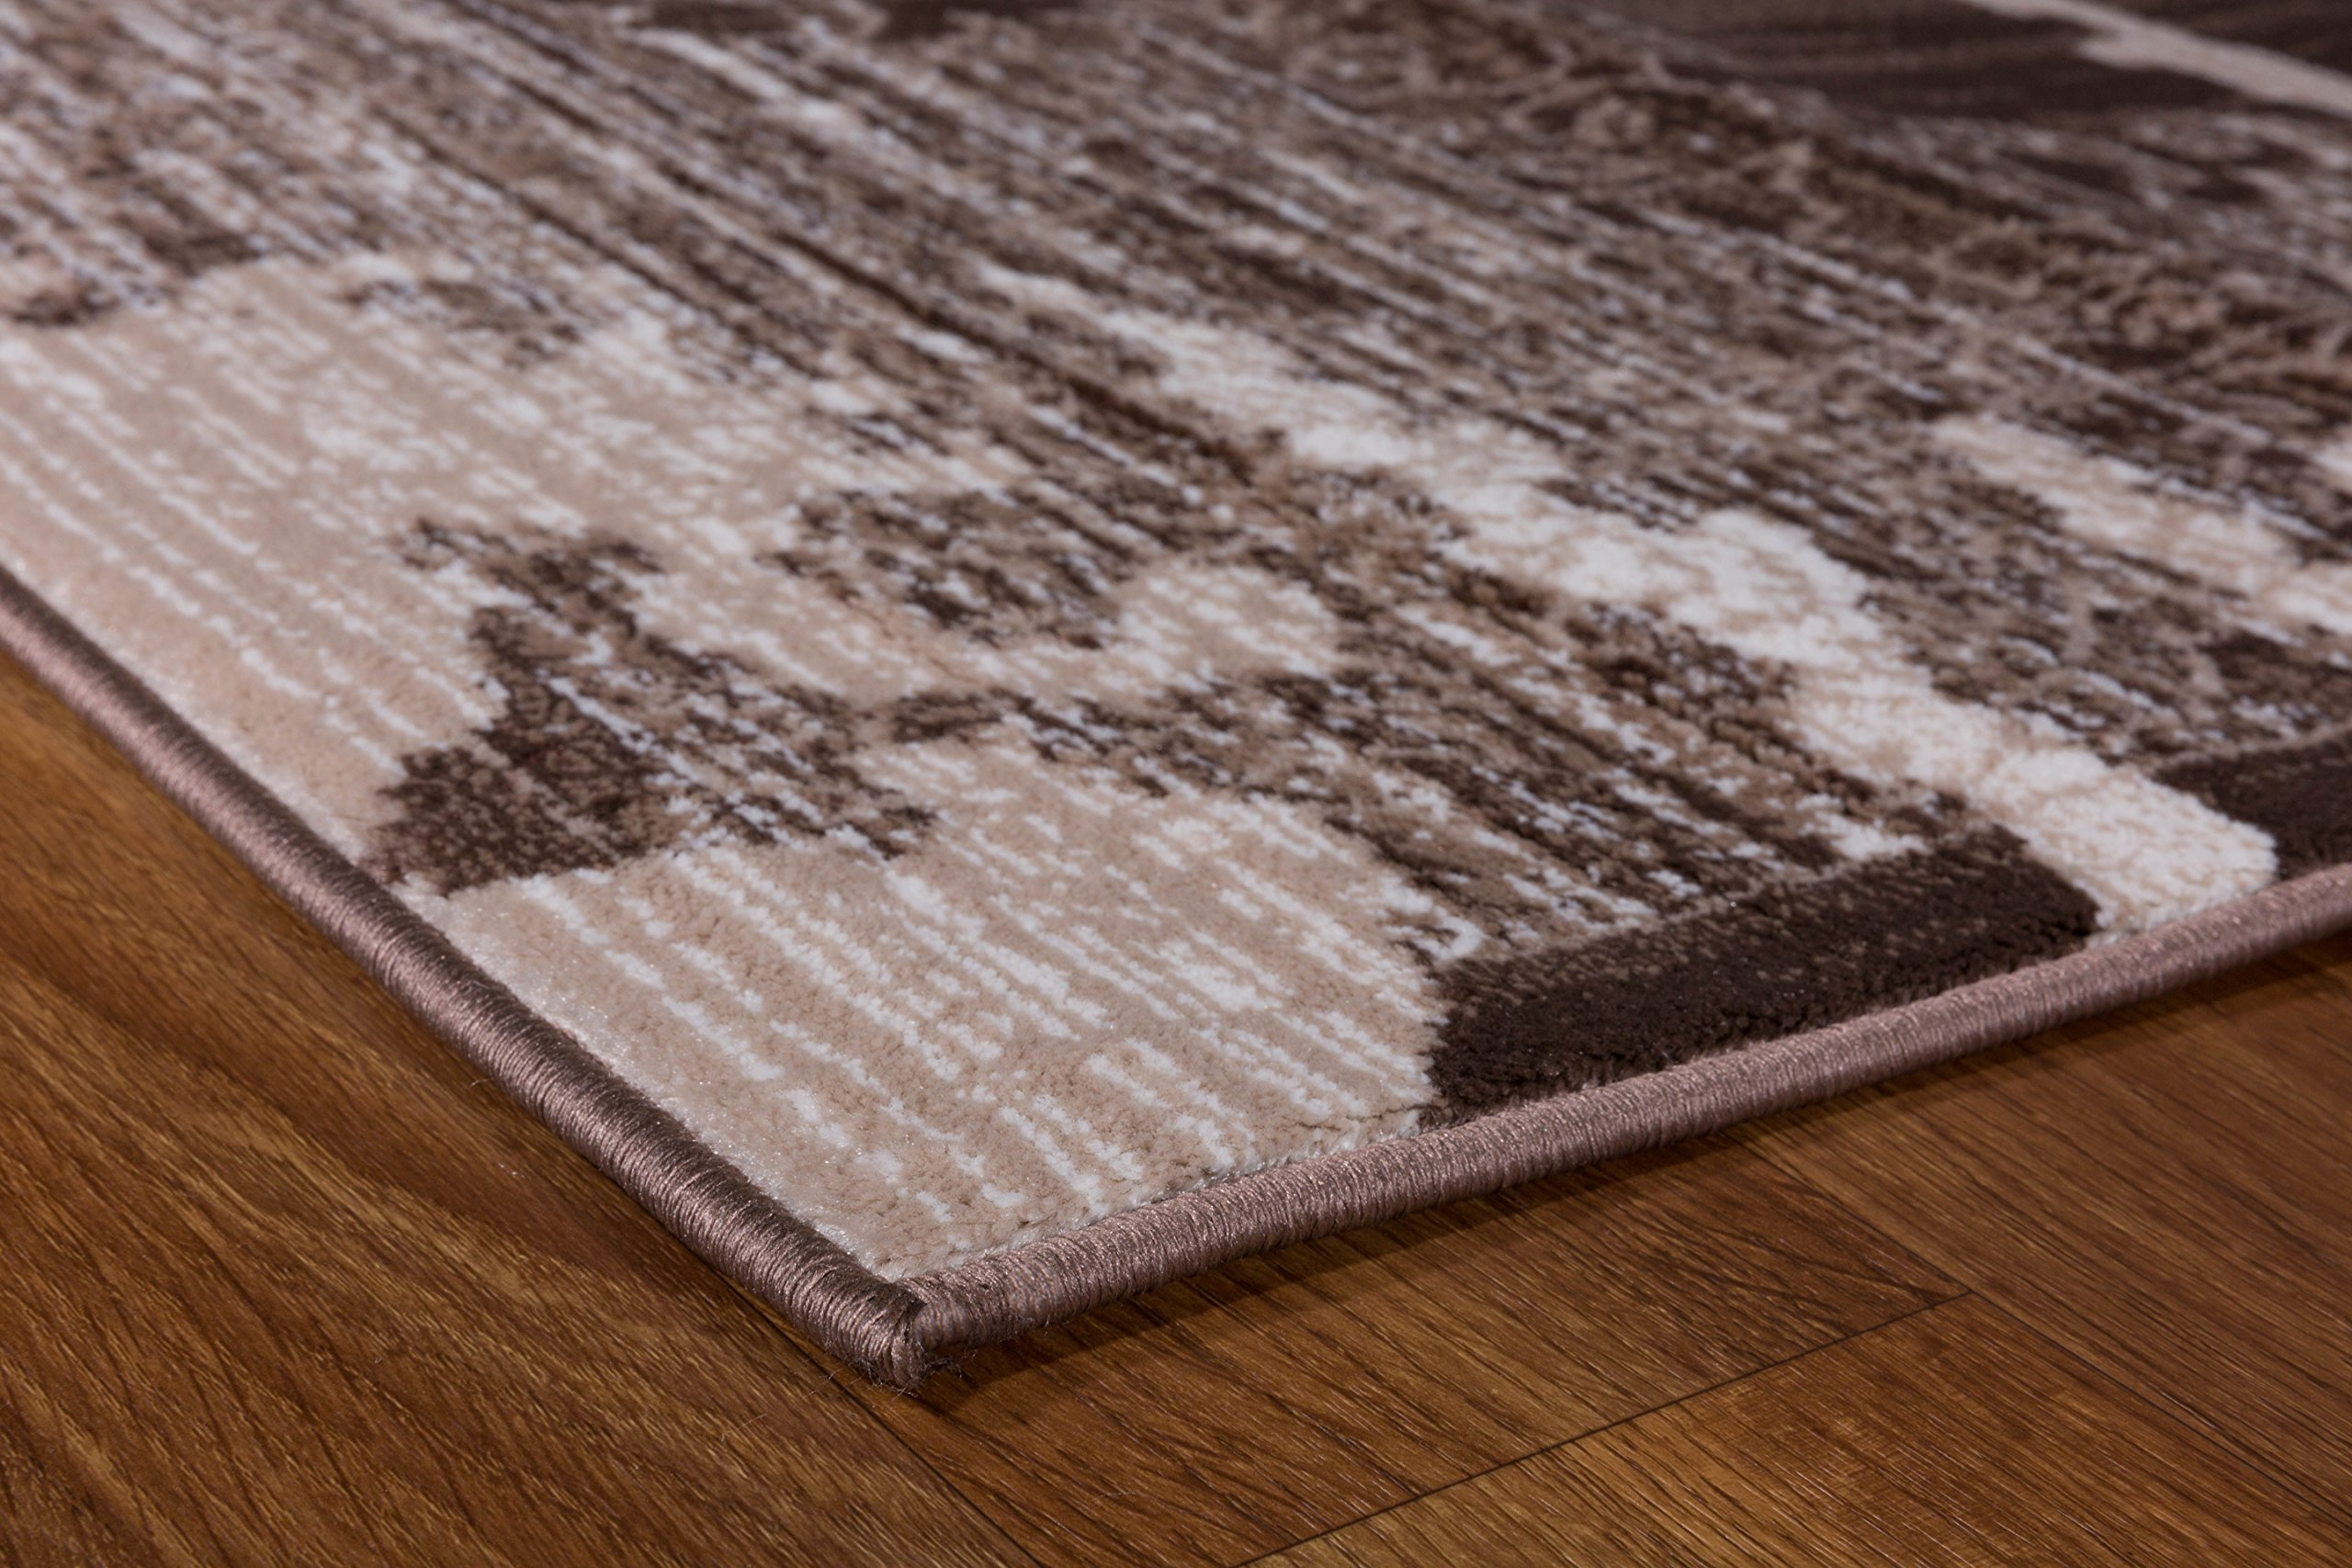 Antep Rugs Zeugma Collection Vintage Area Rug 288-Brown Beige 7'10 X 10' by Antep Rugs (Image #2)